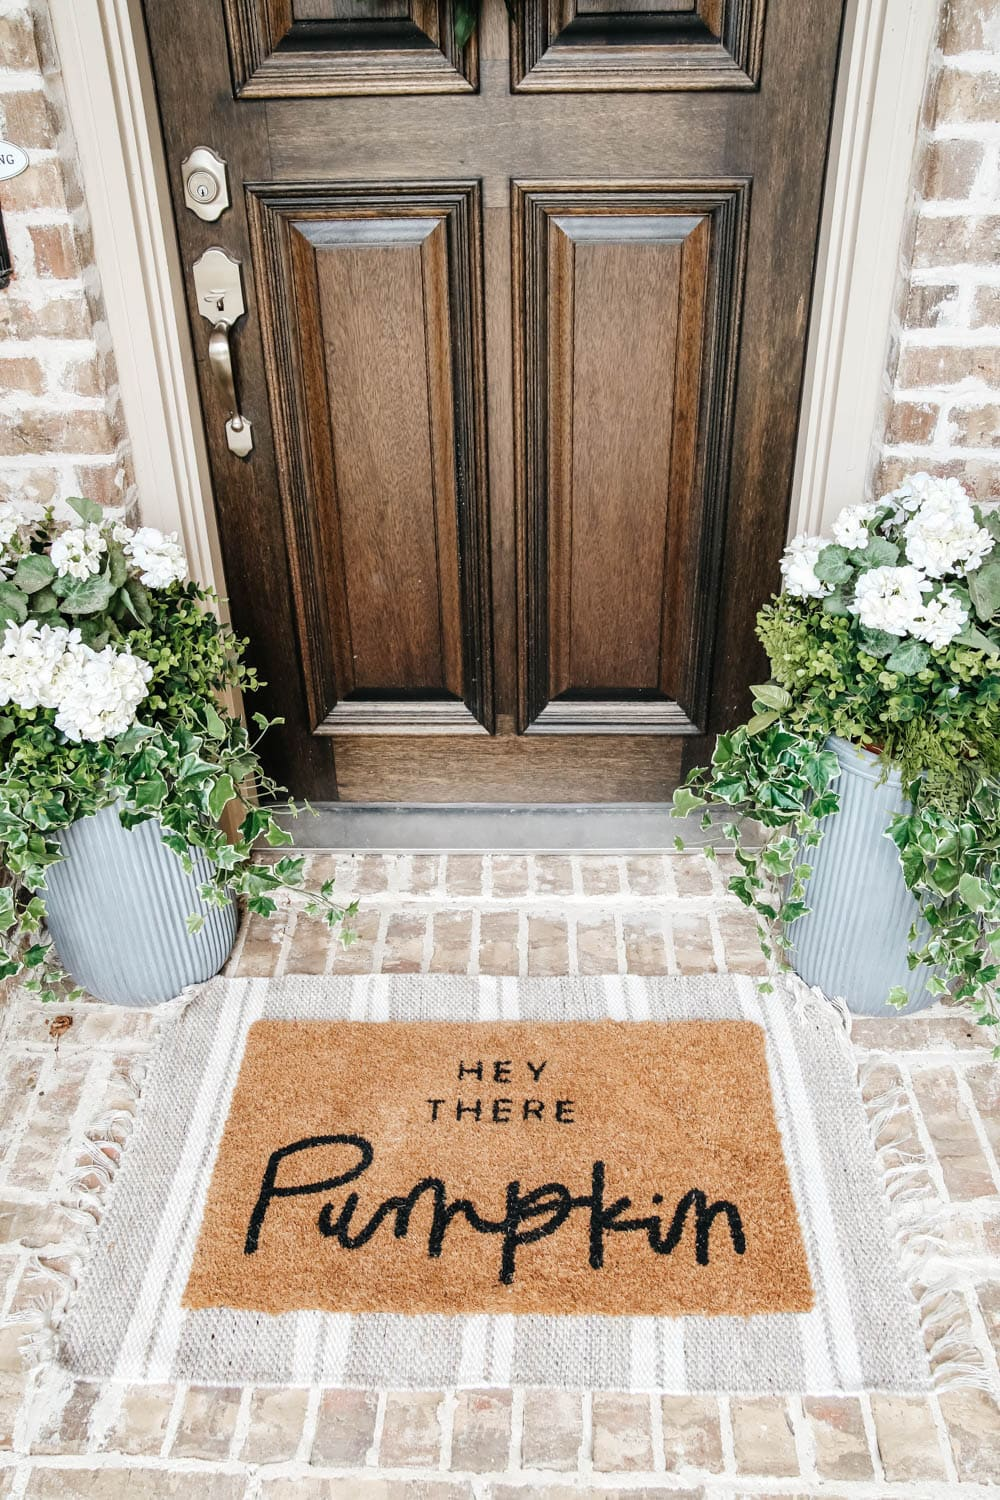 Layer your doormat with a patterned area rug for some contrast. #ABlissfulNest #fallporch